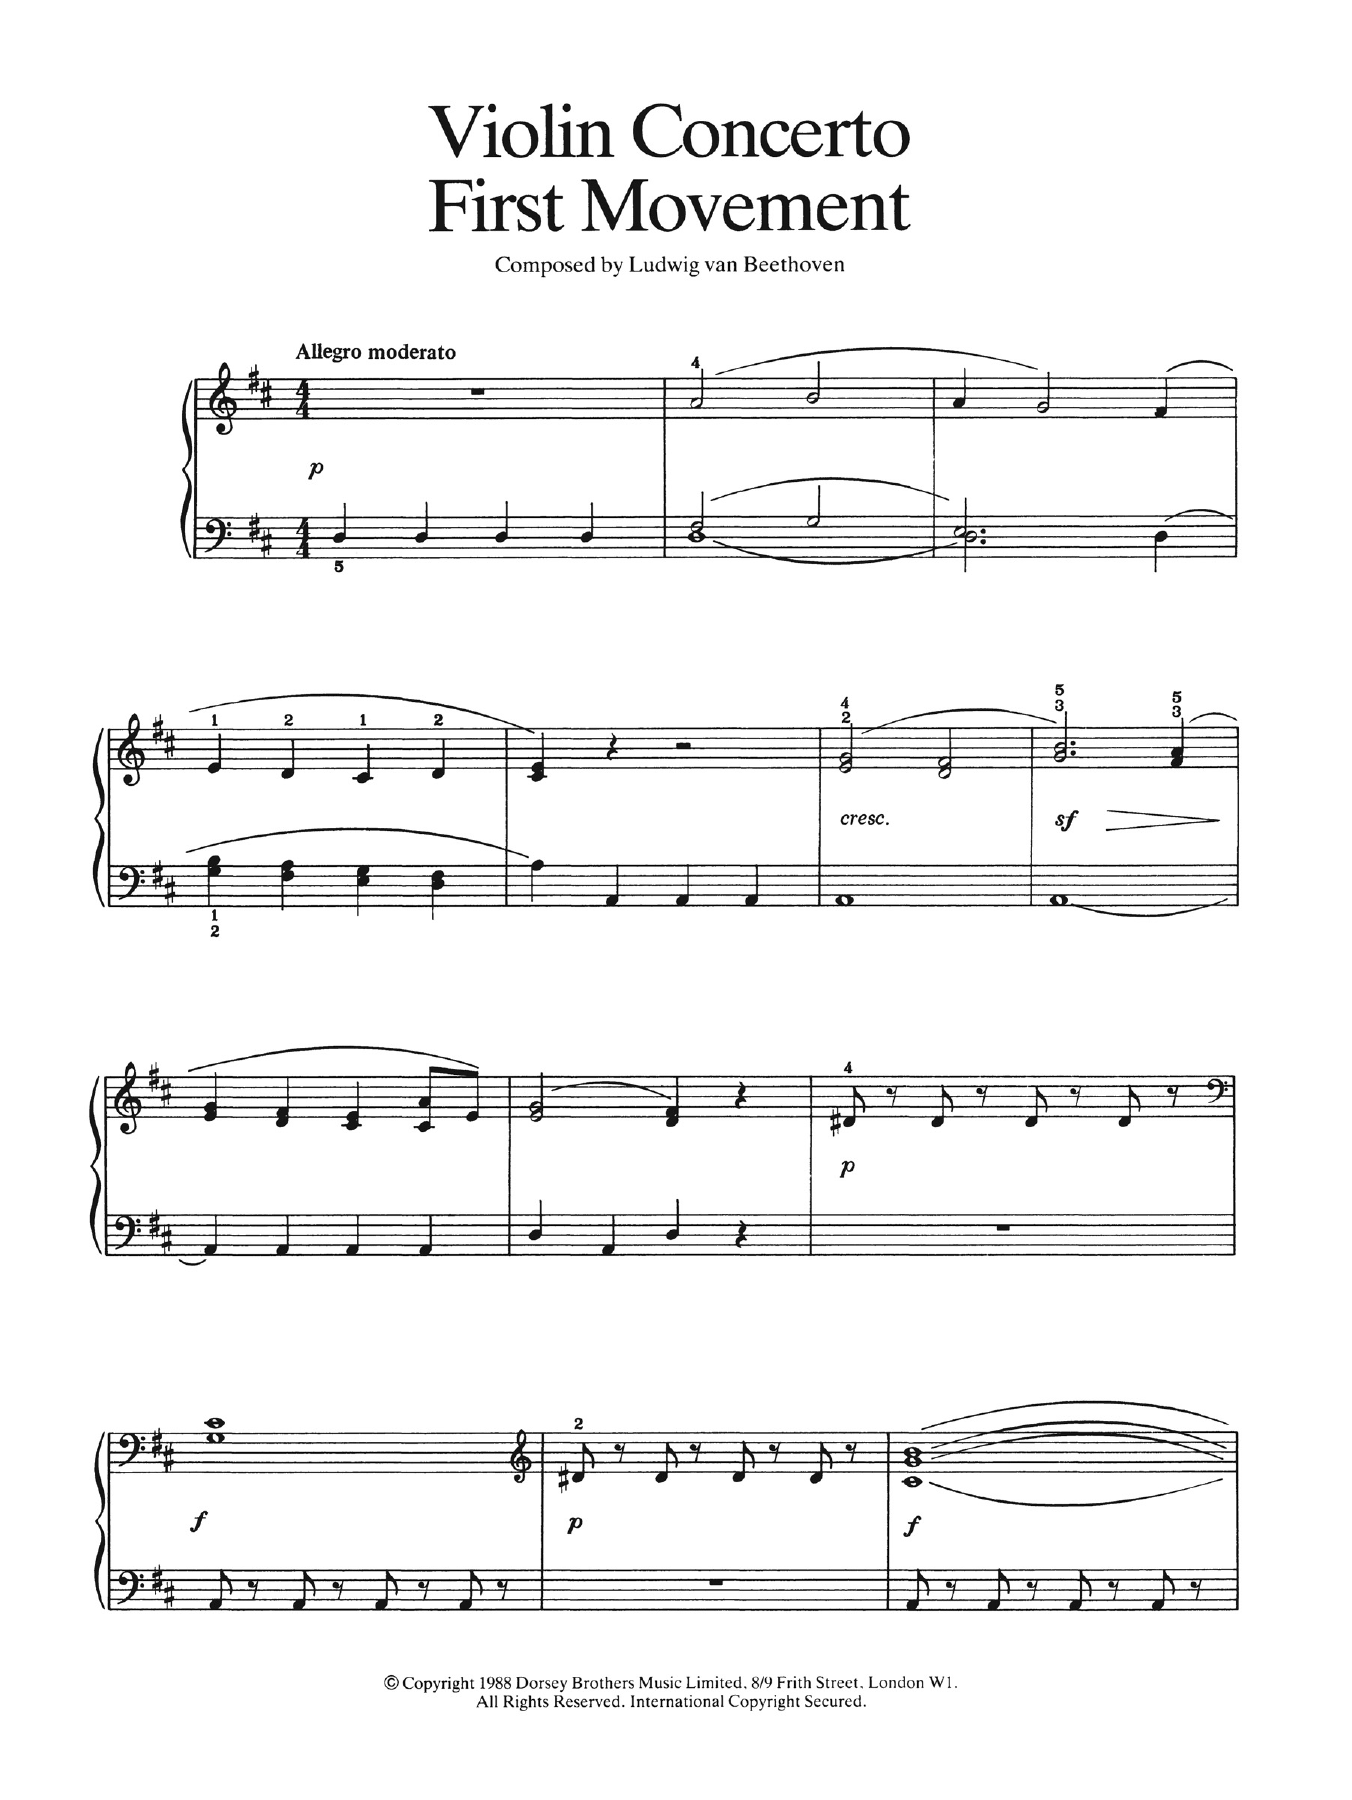 First Movement (from Violin Concerto In D Major, Op. 61) Sheet Music